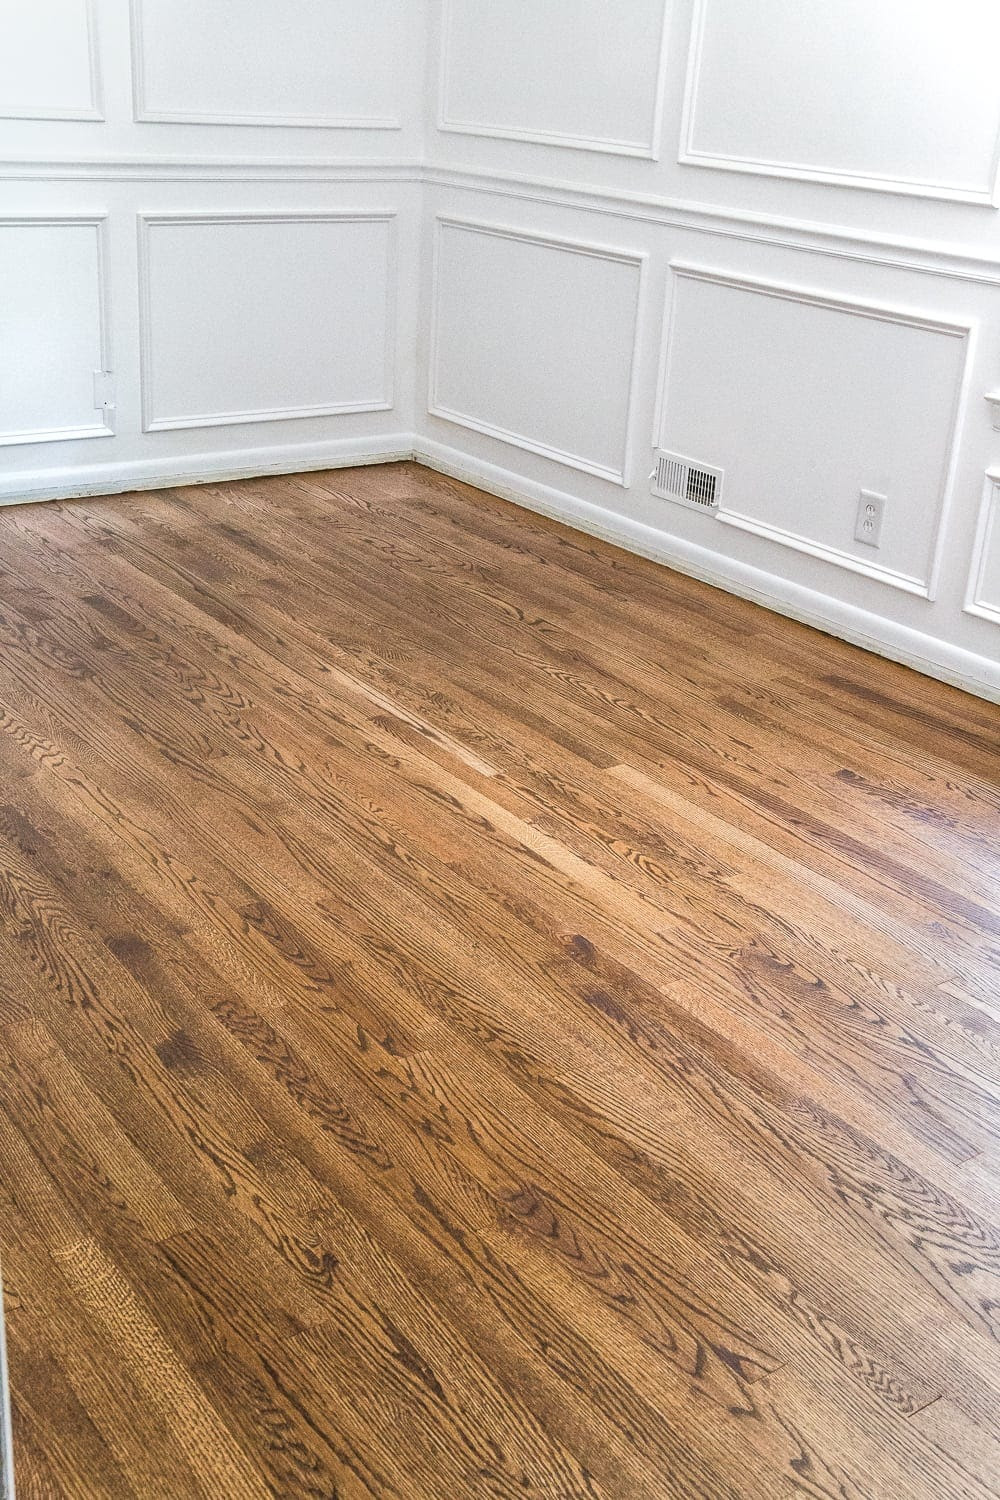 Minwax Provincial Stain + a step-by-step guide for refinishing hardwood floors